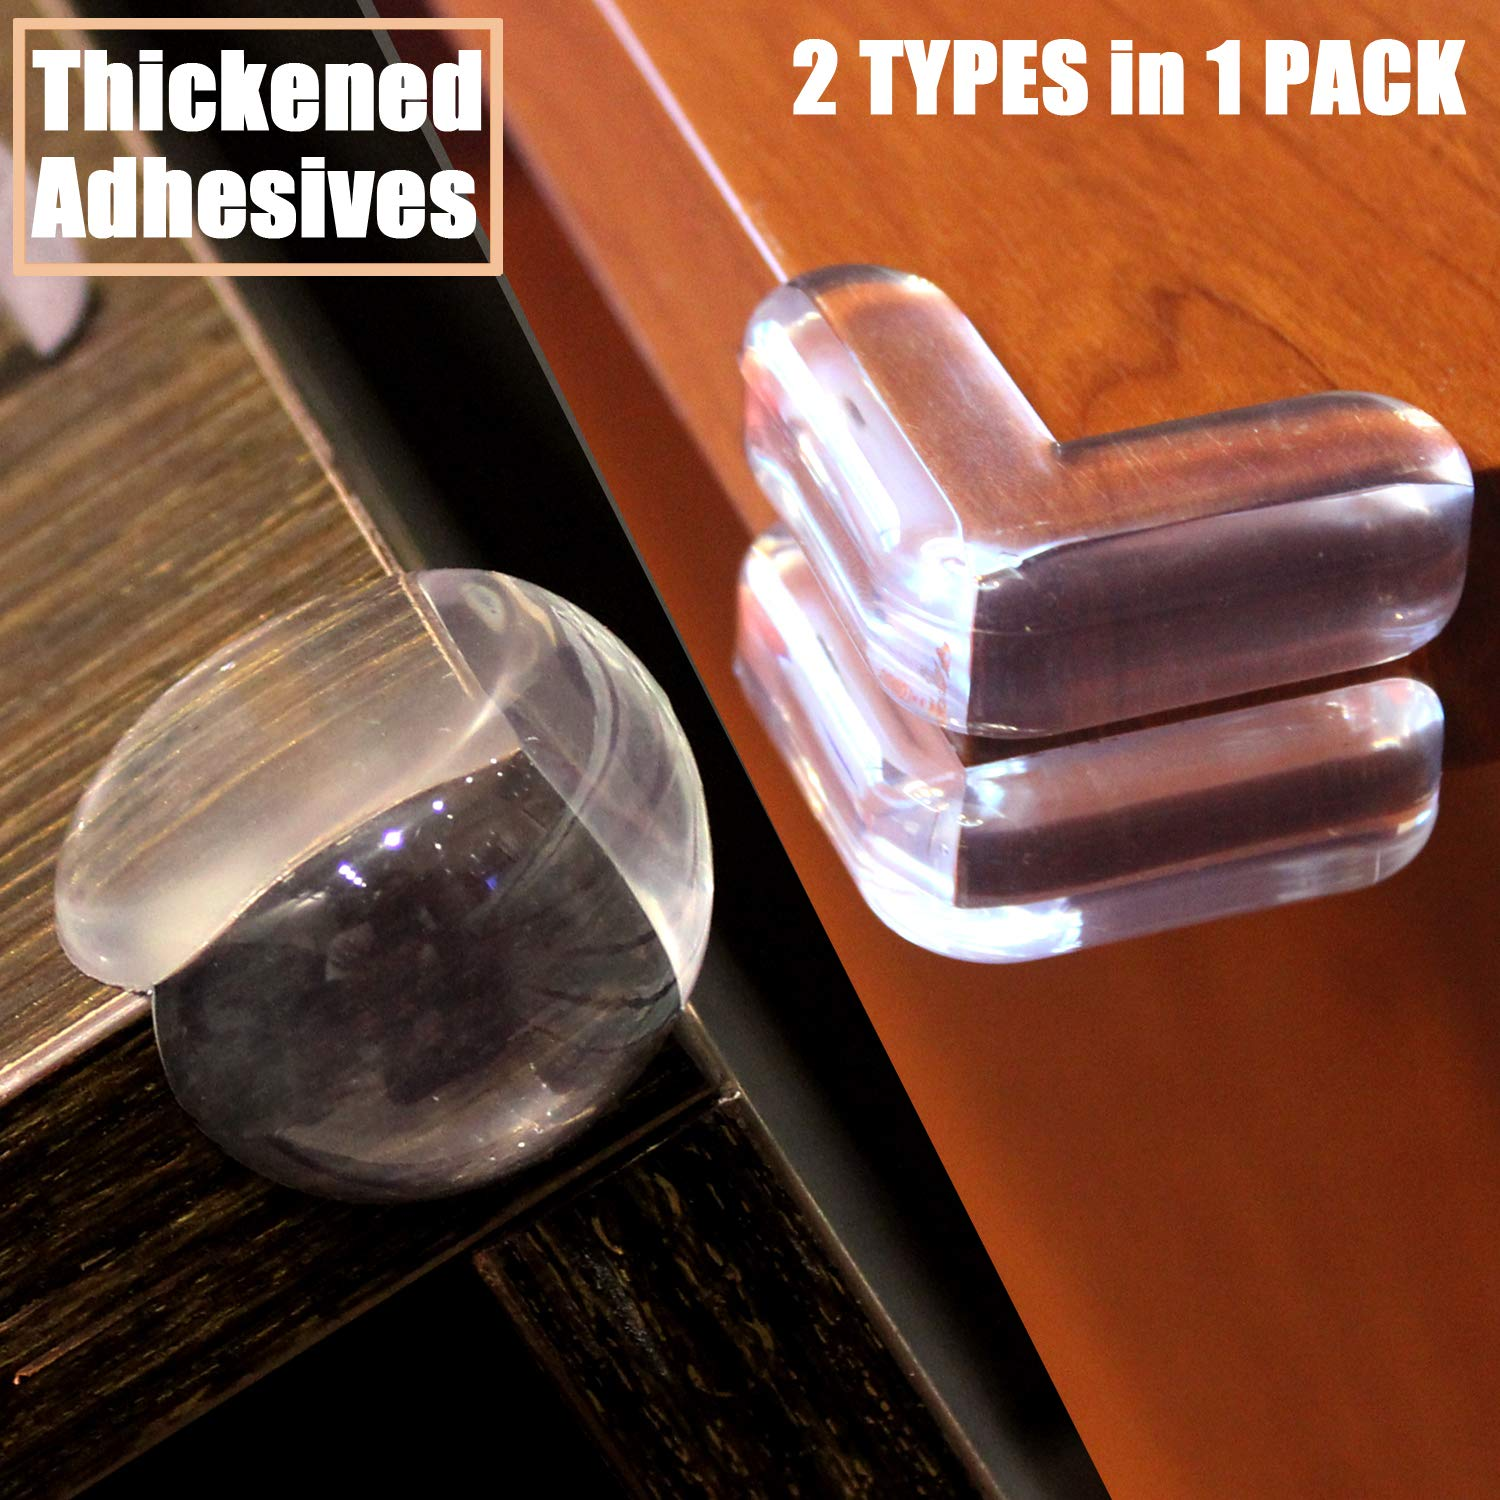 Protectors Thickened Adhesive Ball Shaped Furniture